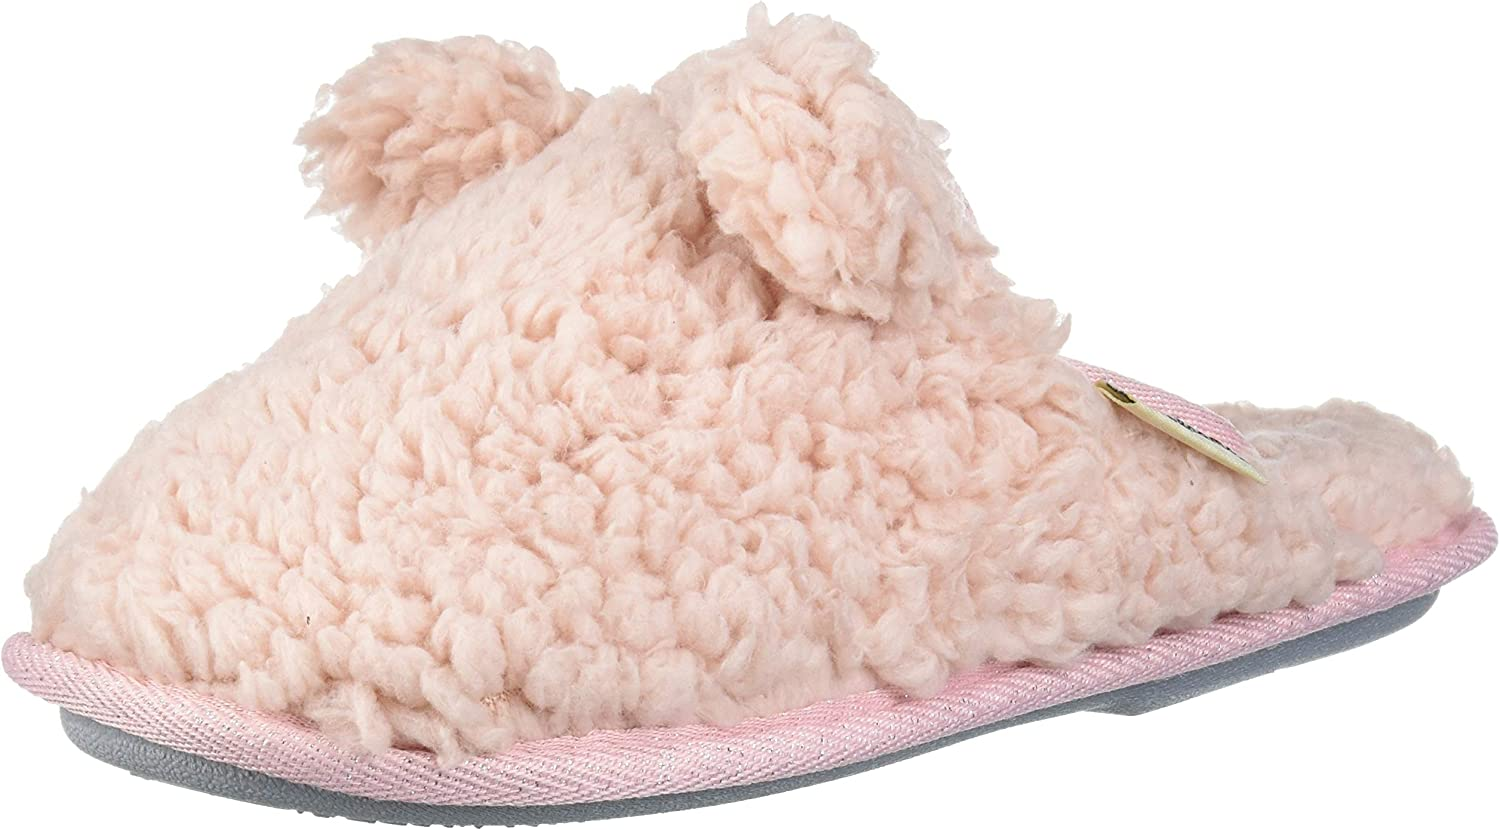 Dearfoams Unisex-Baby Kids Toddlers faux sherpa Scuff with Ears Slipper, Dusty Pink, 11-12 Toddler Medium US Toddler